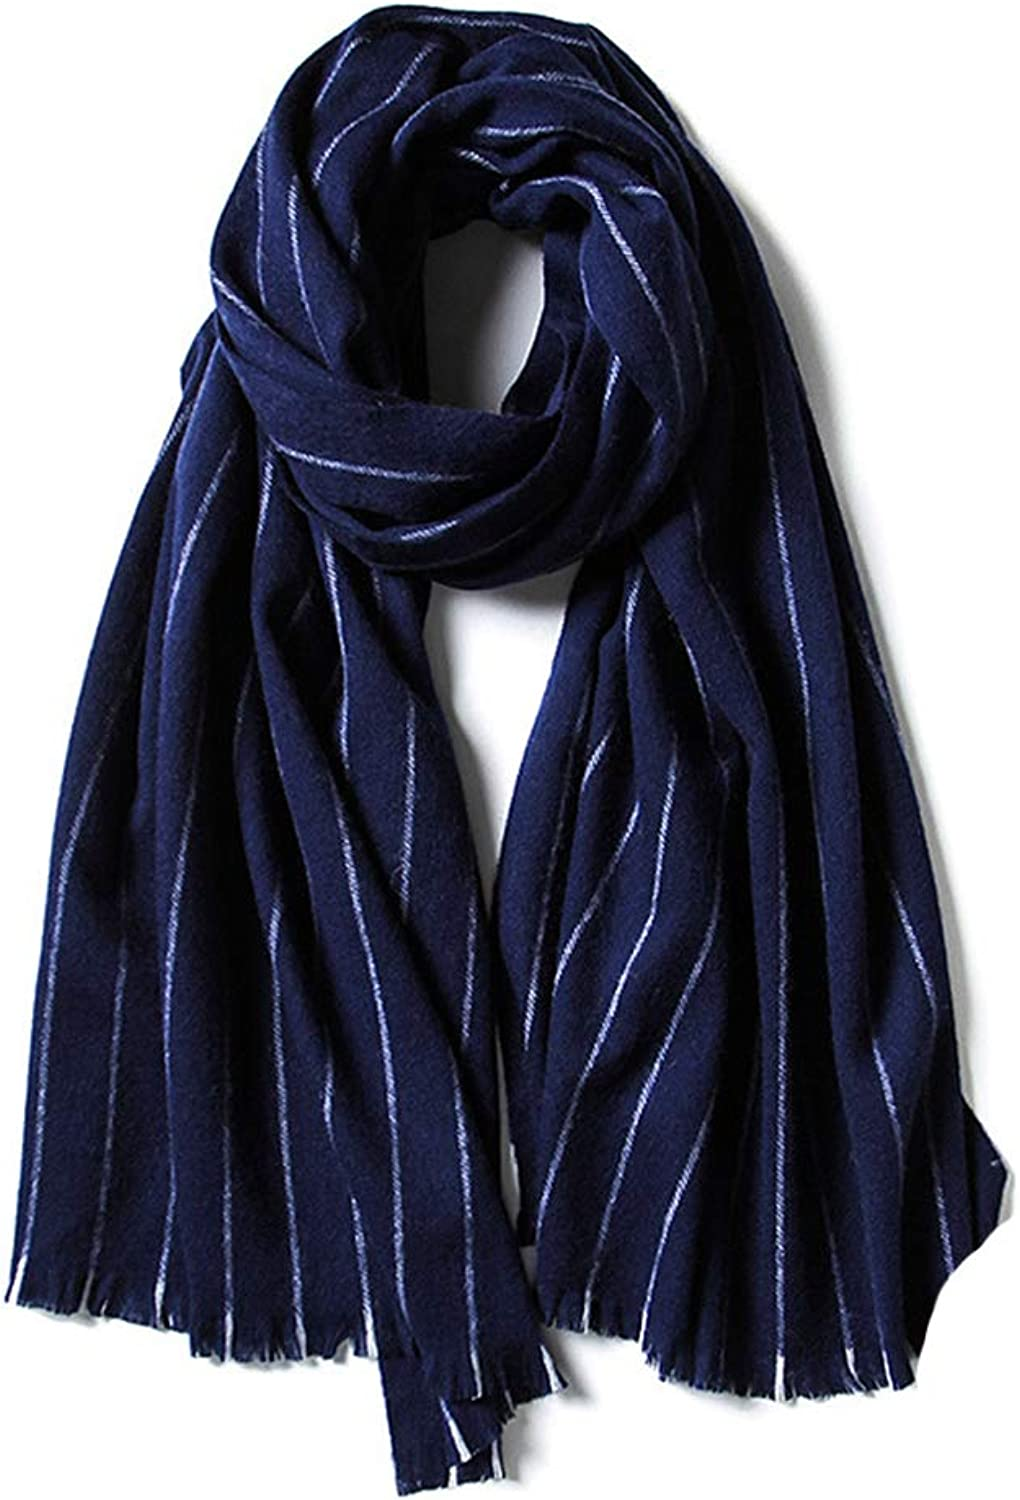 Warm Thick Long Scarf for Women Men Hight Quality Fashion Striped Collar Dark bluee Wrap Shawl Fall Winter Super Soft Scarves for Couple Gift